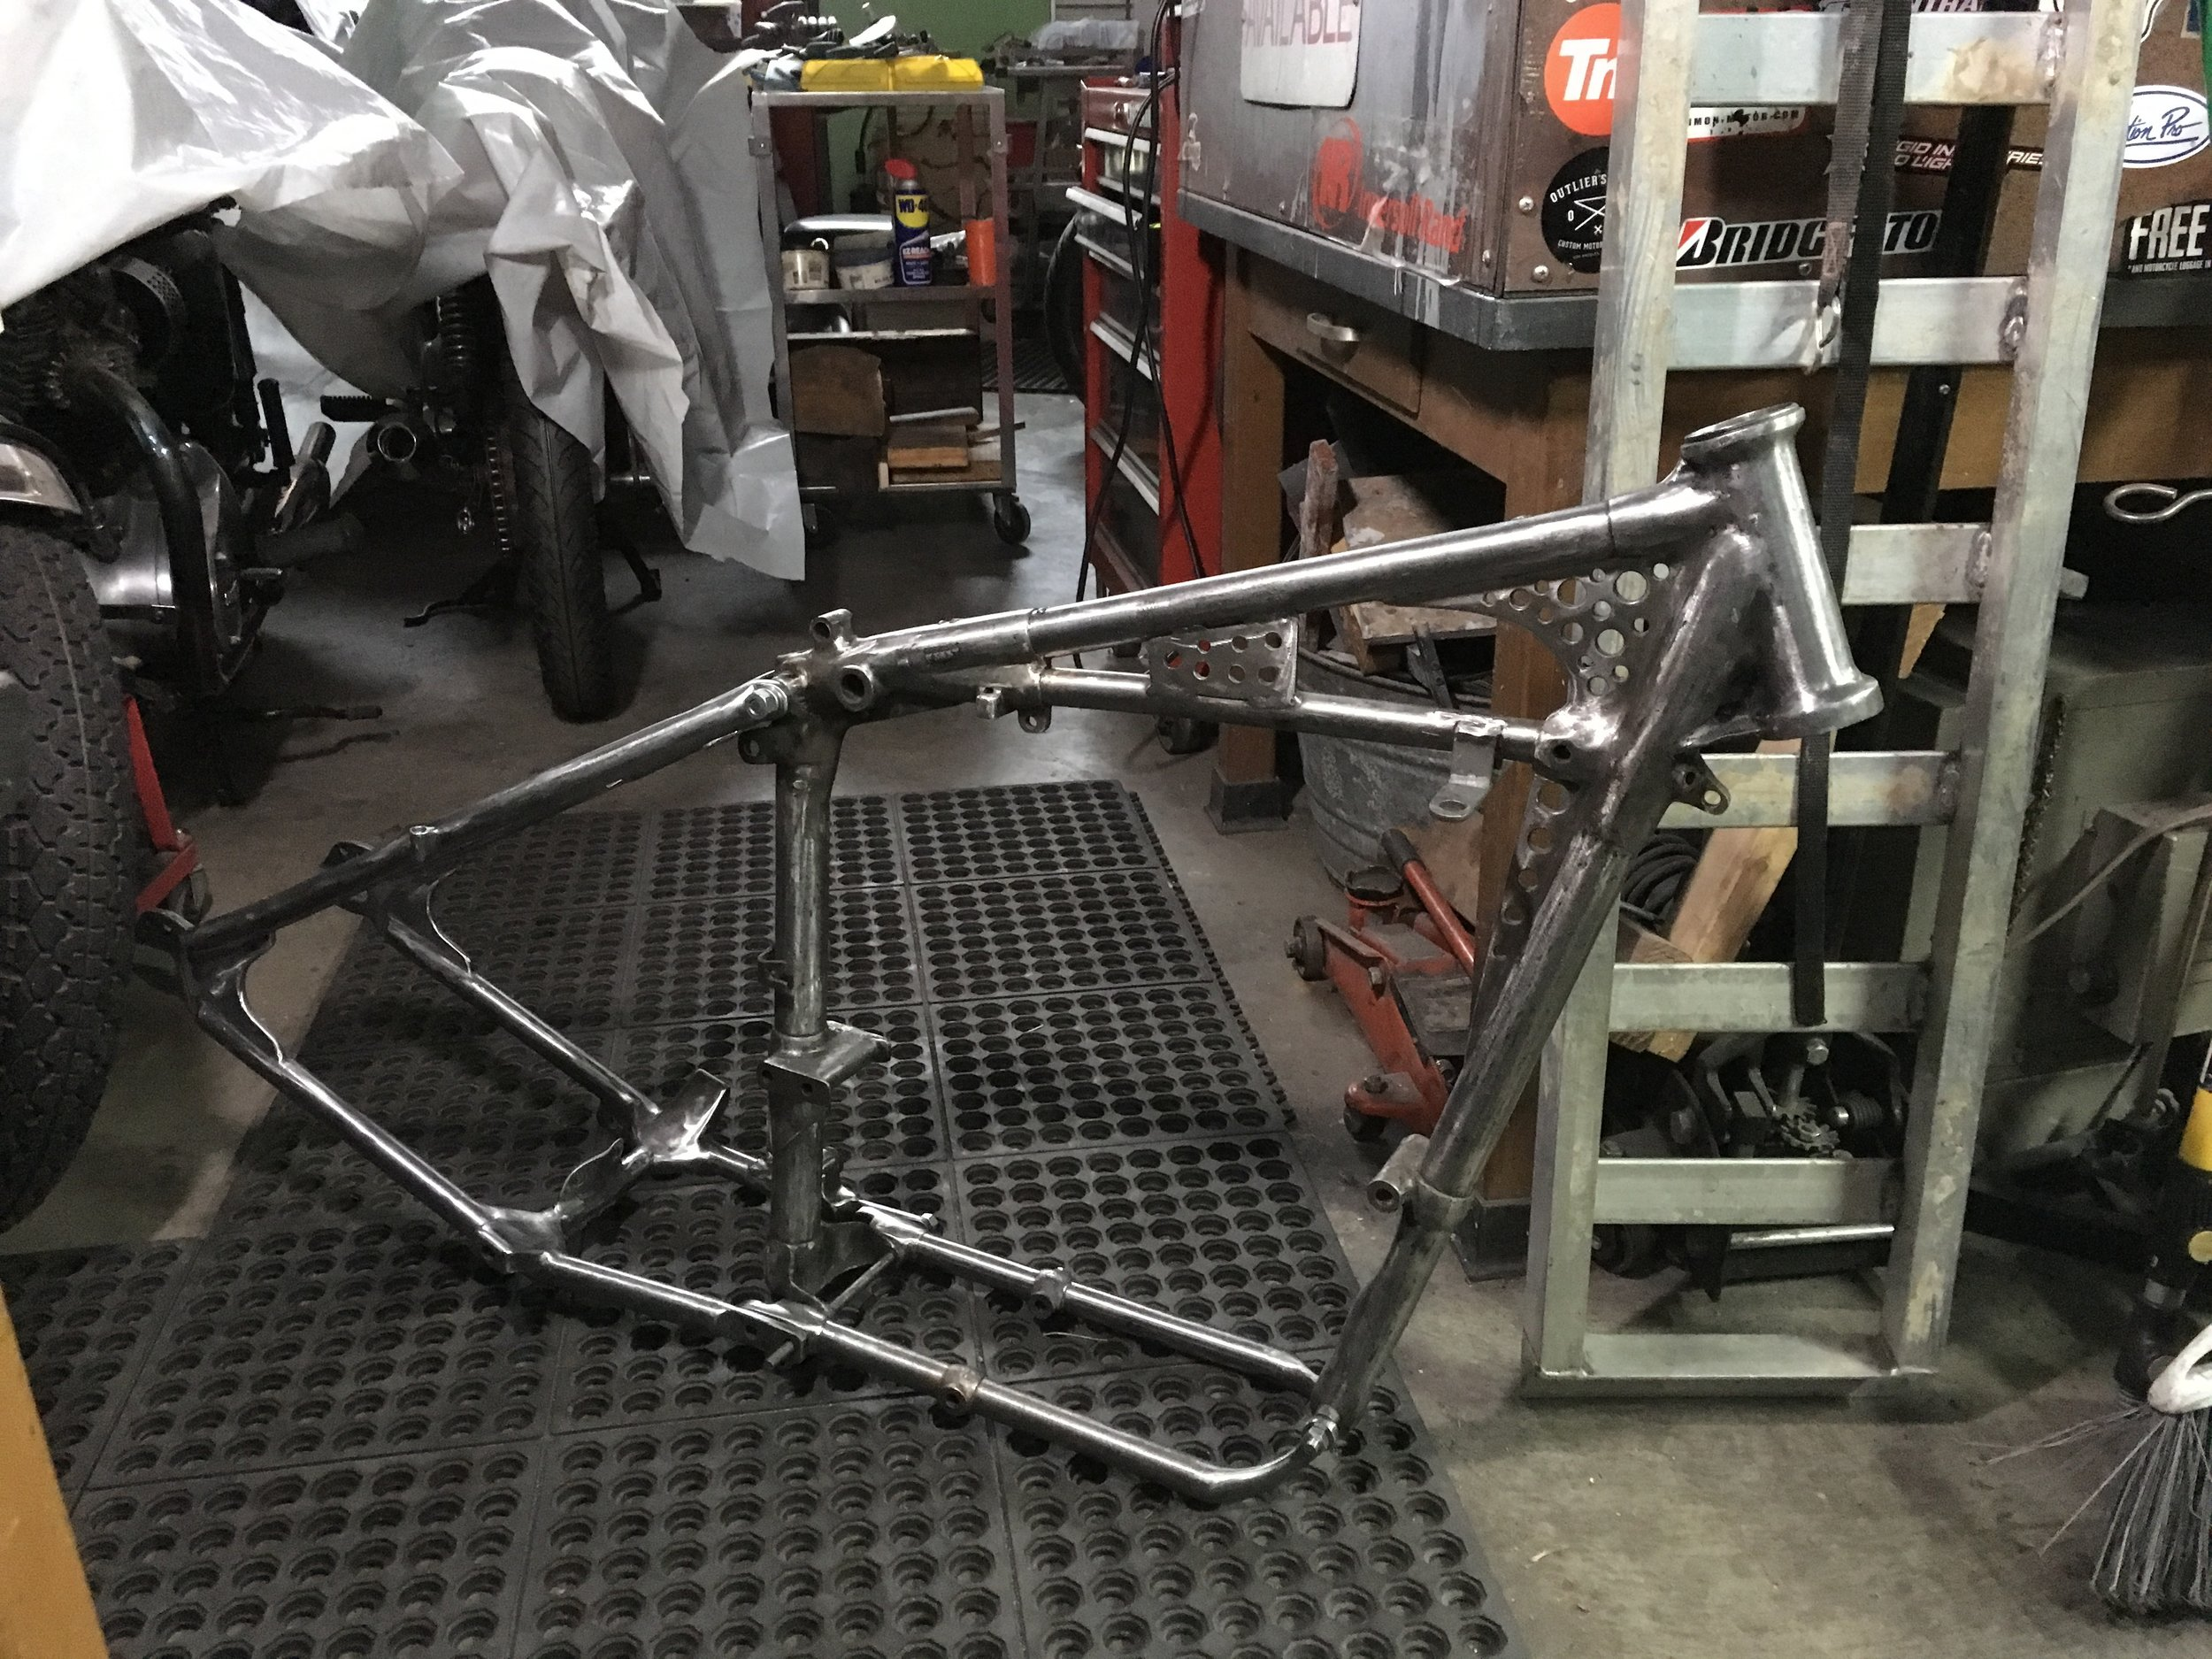 Putting together pieces of the 1957 Triumph Thunderbird frame for final metal finishing, Gouges, pitting, welding porosity and bad welds are being ground out and filled to get the frame smooth enough for chrome plating.